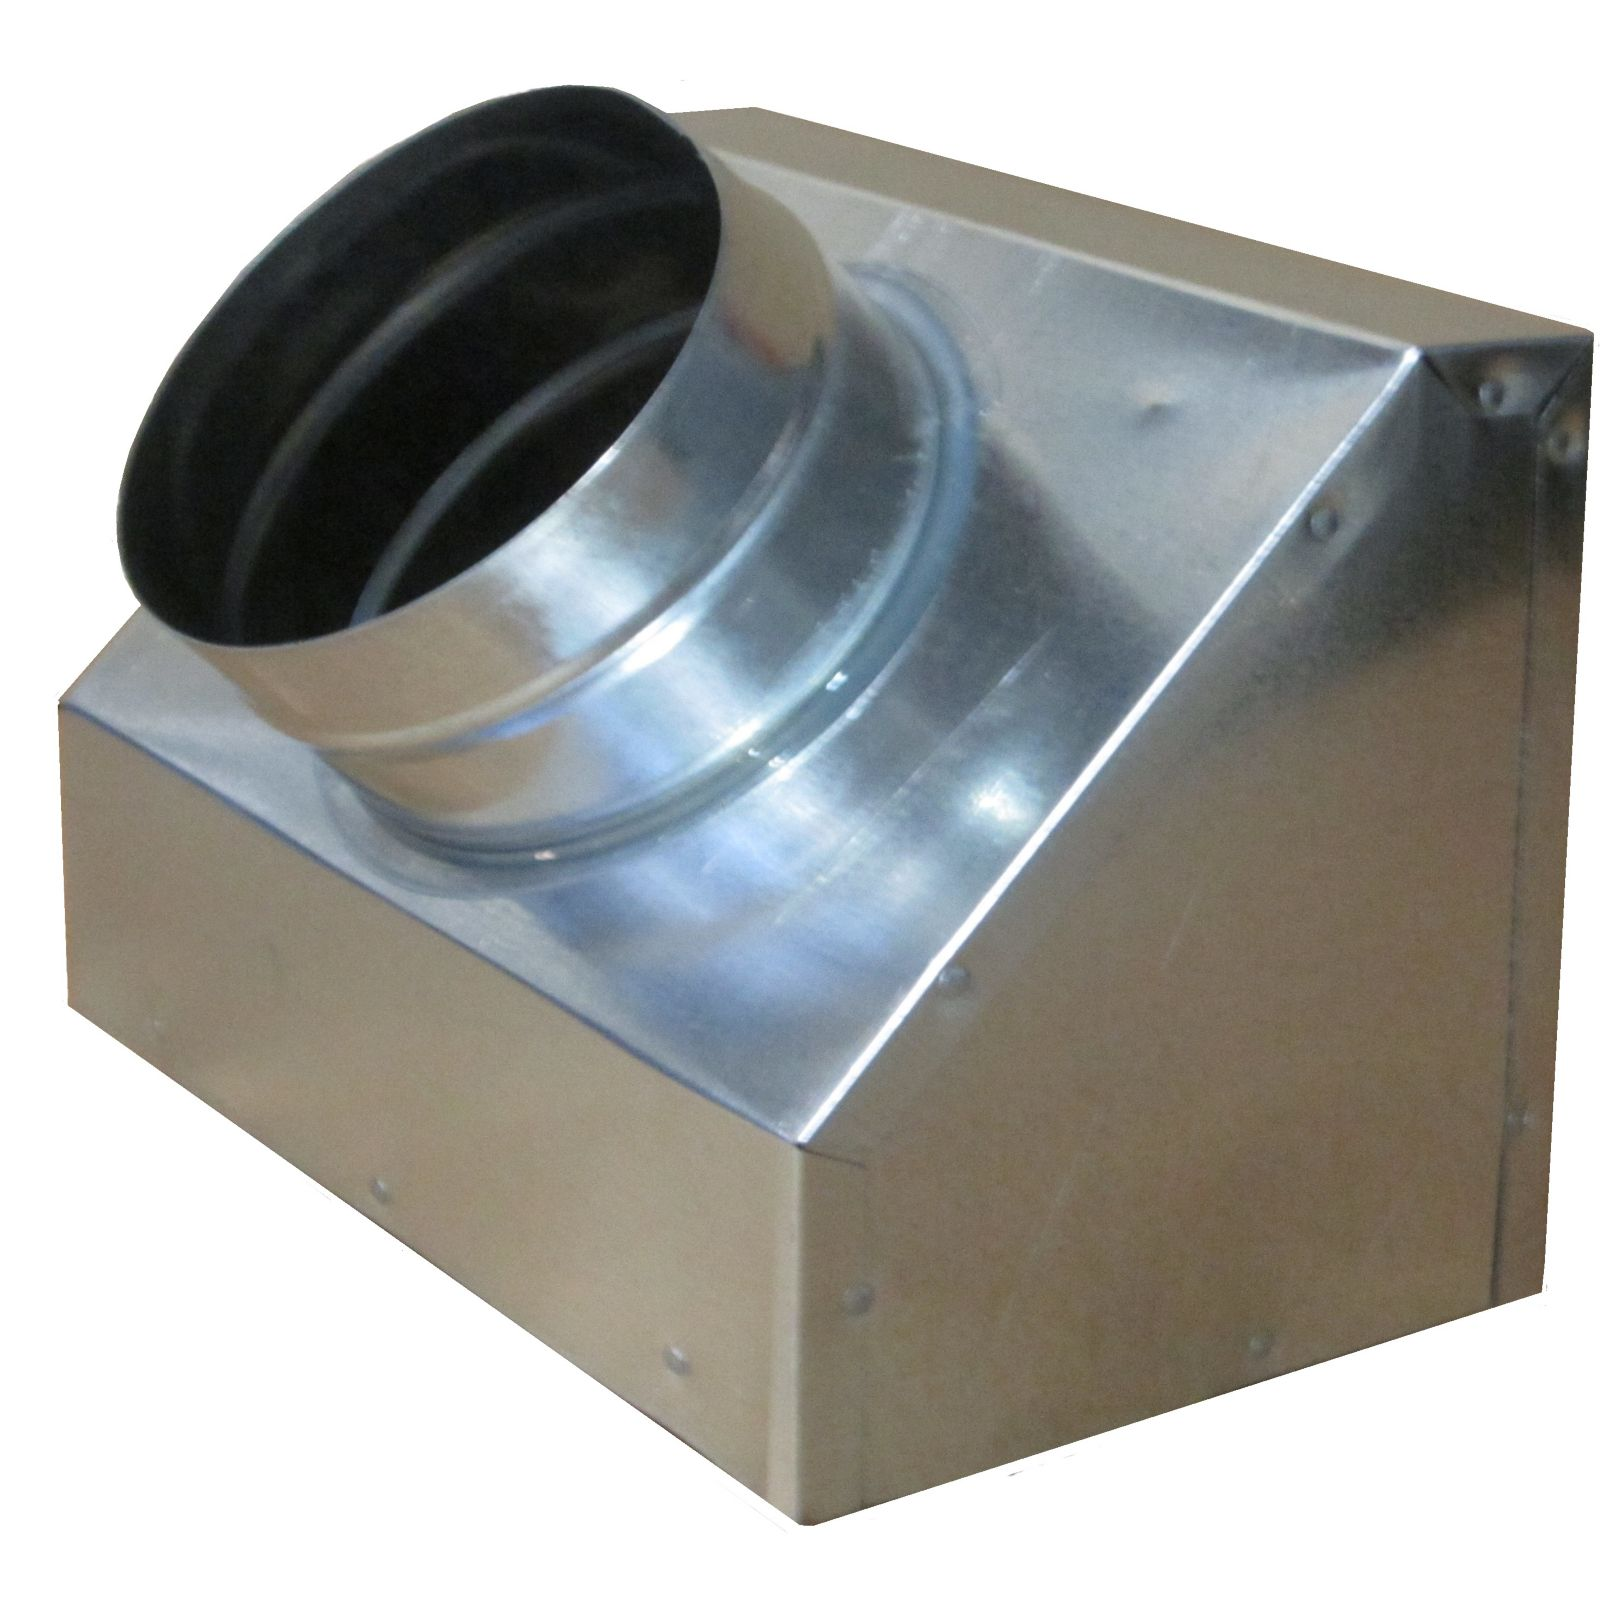 "Snap-Rite 12X06X083685FS - Insulated 45a° Slant Register Box, With Flange, 8 1/2"" Deep, 12"" x 6"" x 8"" - R6"